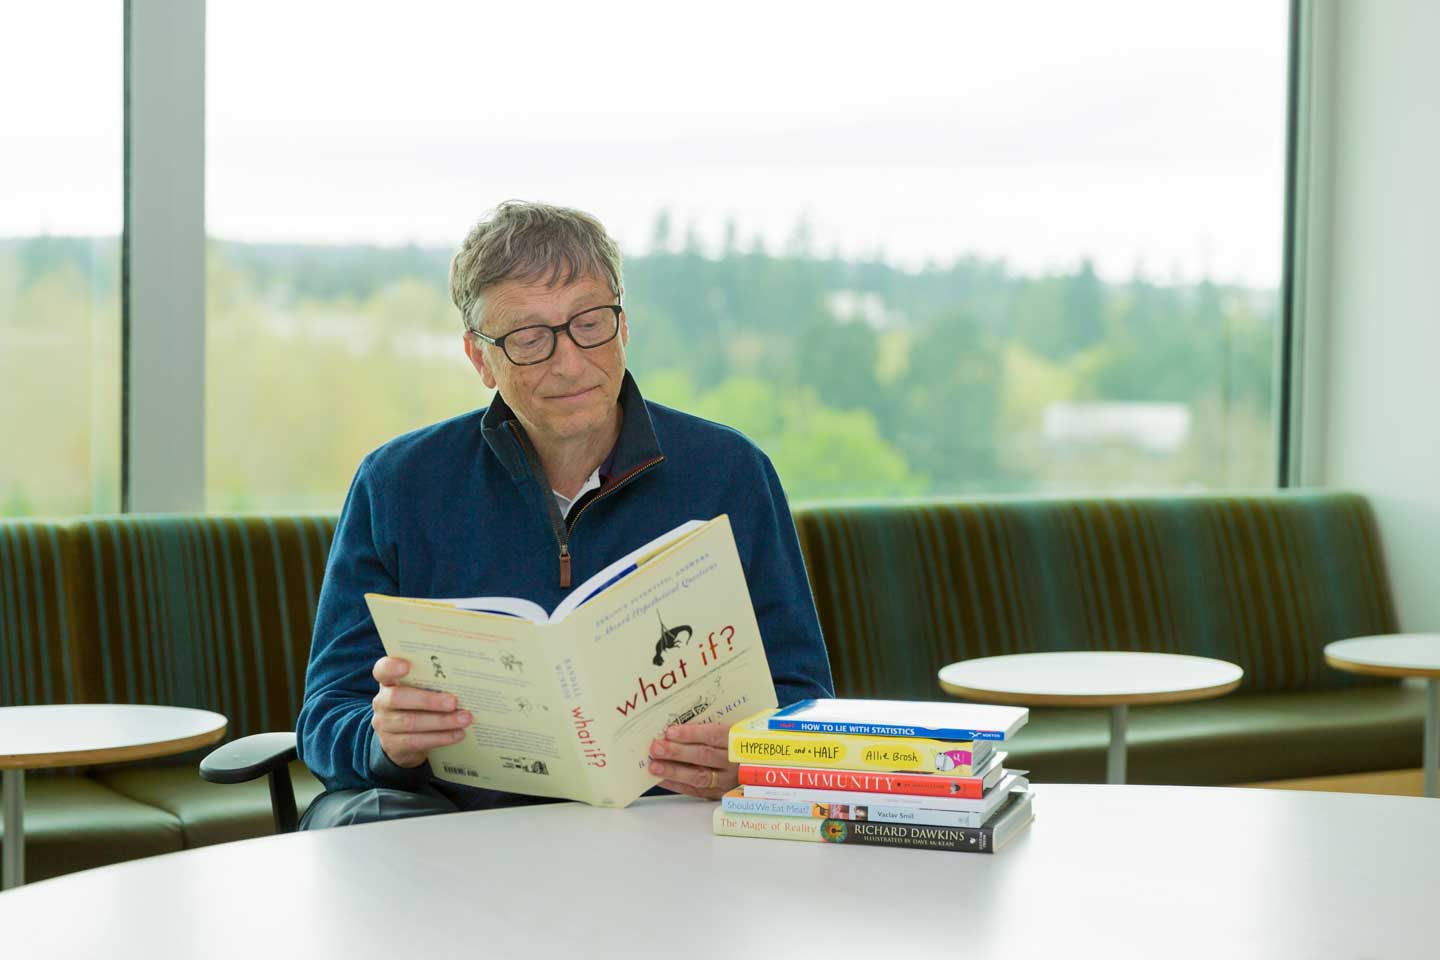 How To Read More Books Bill Gates Reads At Least 50